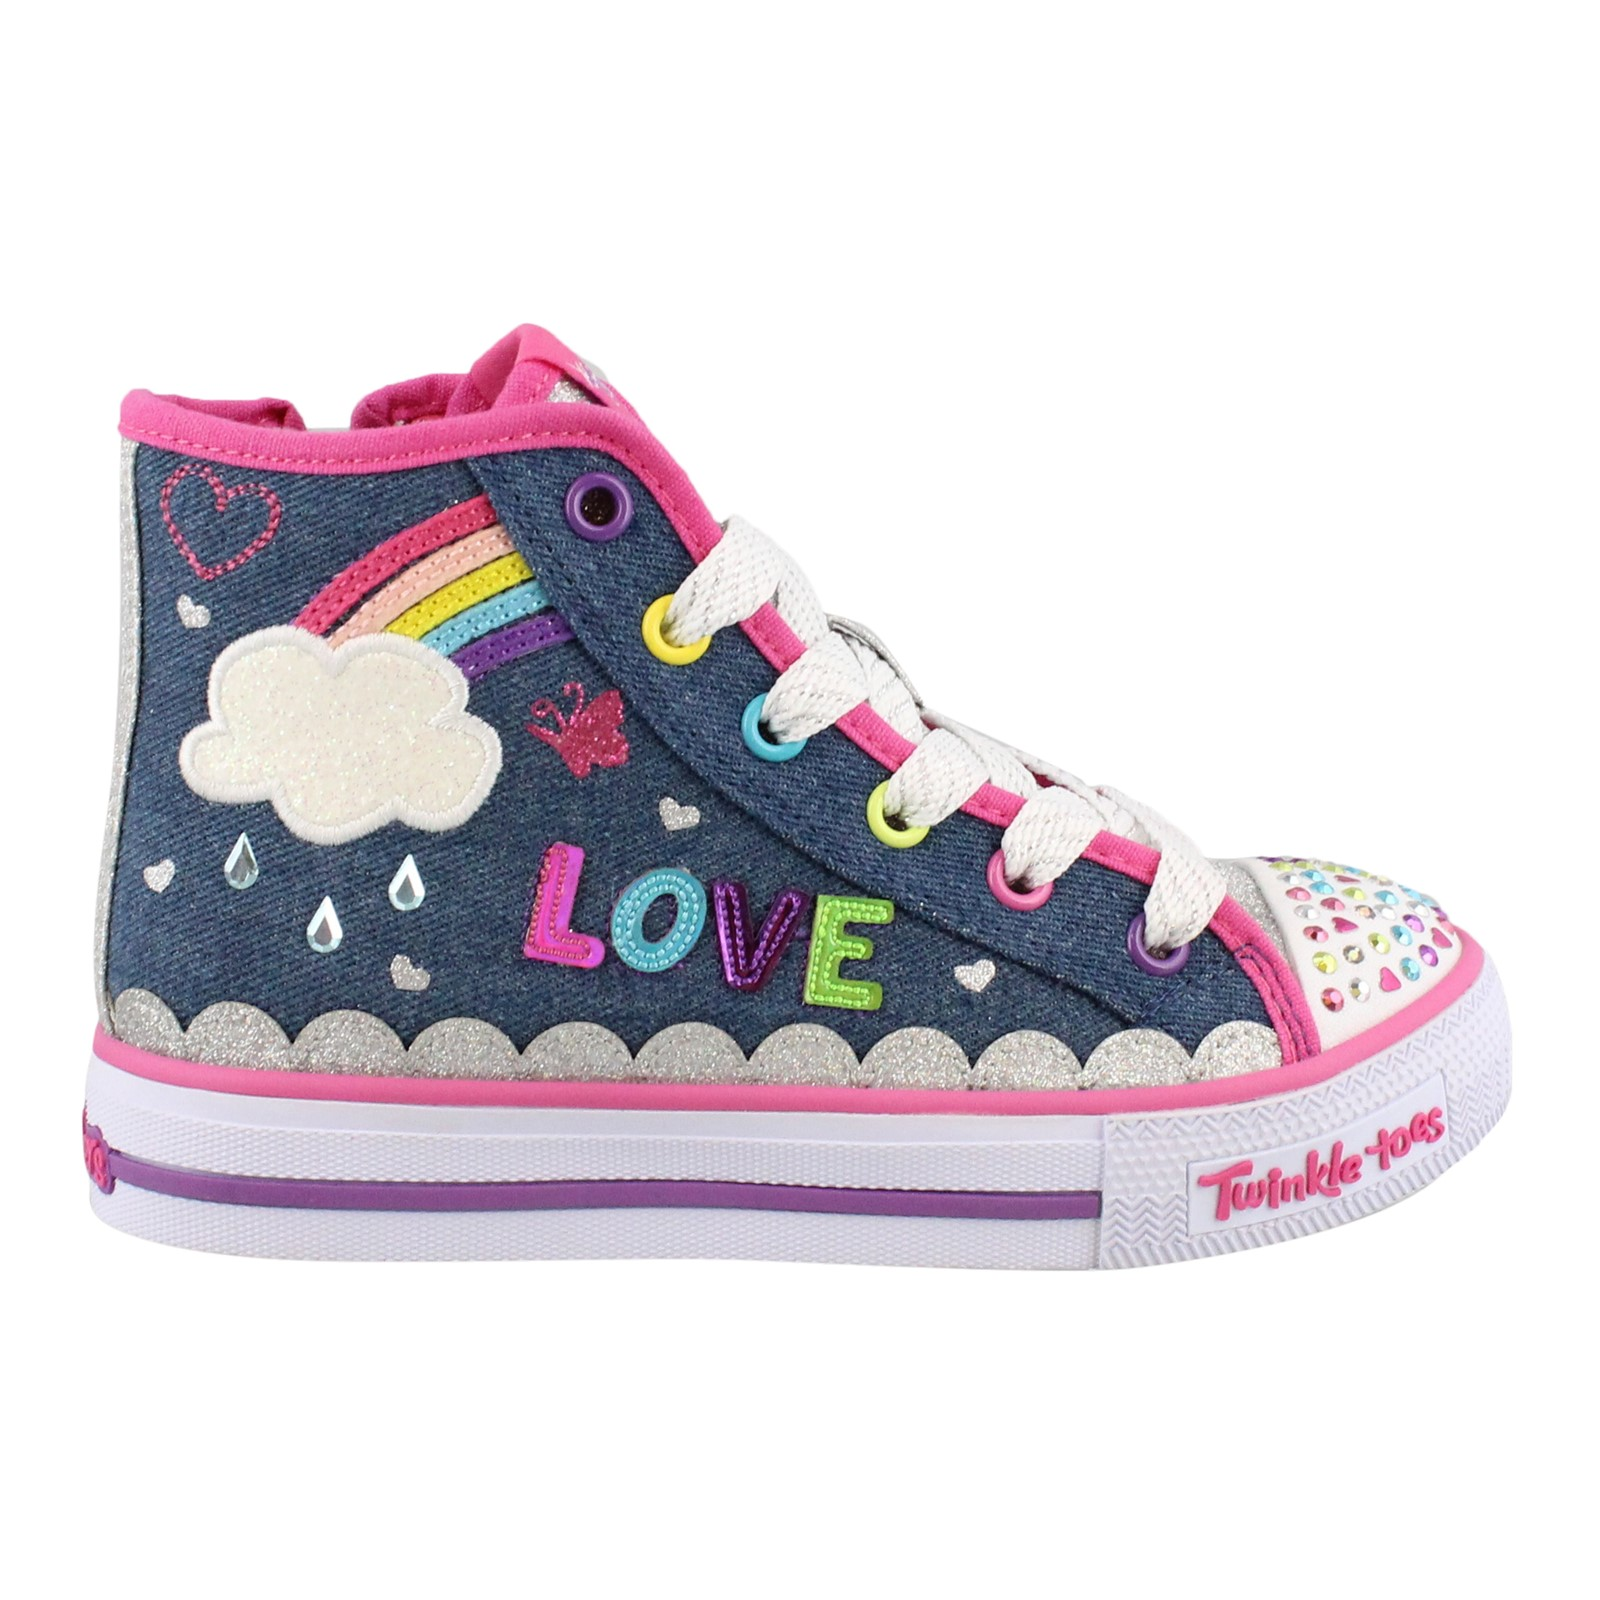 Girl's Skechers, S Lights Shuffles Sparkle Skies Light up Shoes